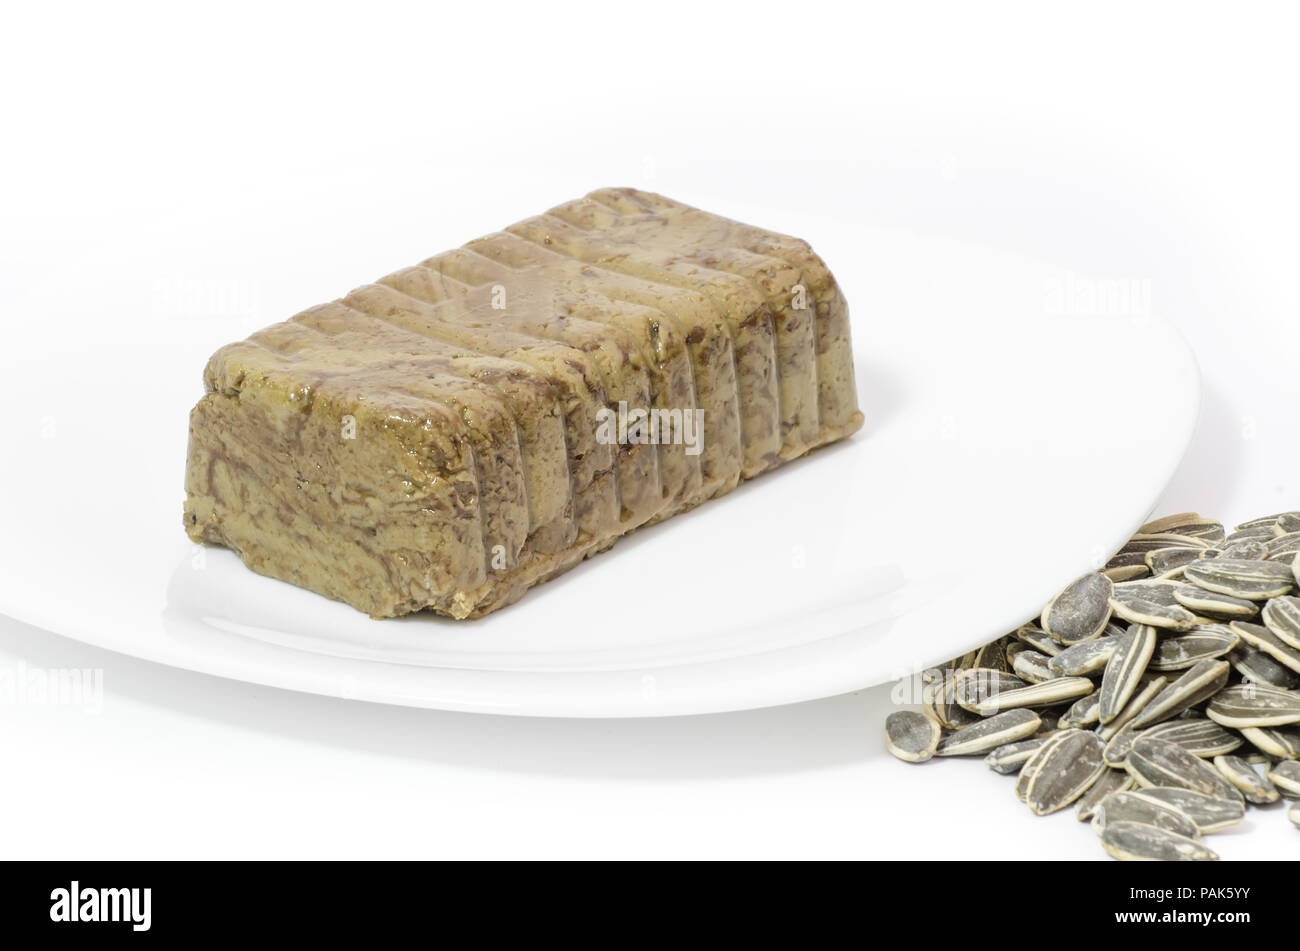 Traditional eastern europe dessert called halva made from sunflower seeds and cocoa on a white background - Stock Image